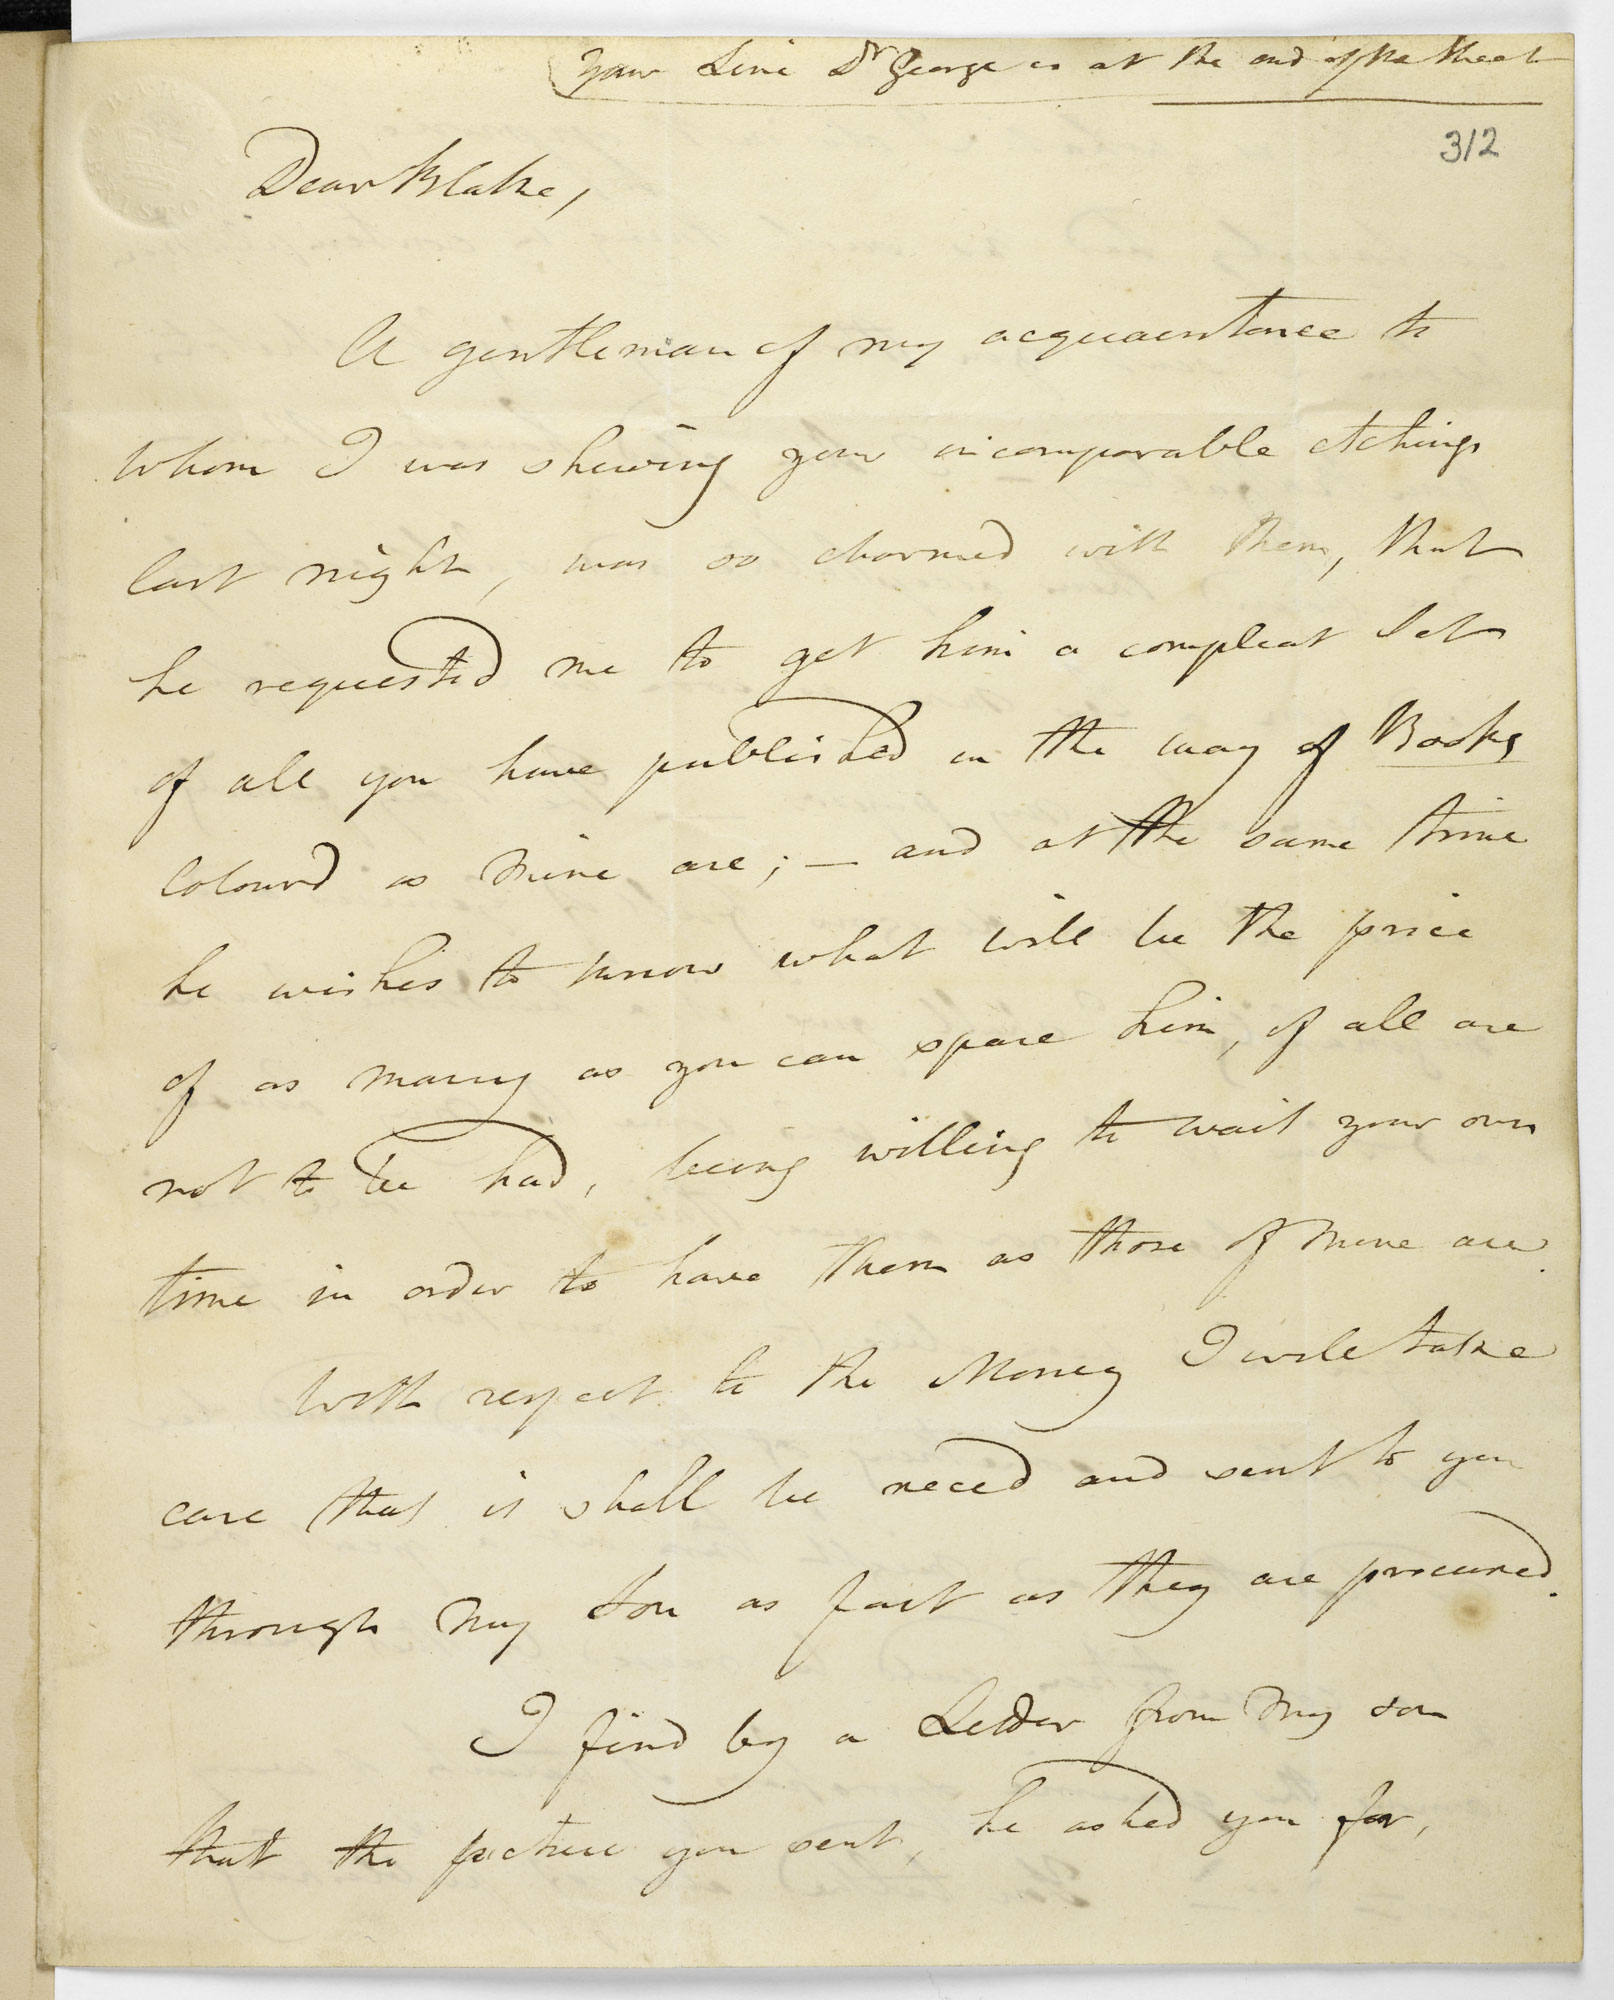 Letter from George Cumberland to William Blake, 18 December 1808 [folio: 312r]